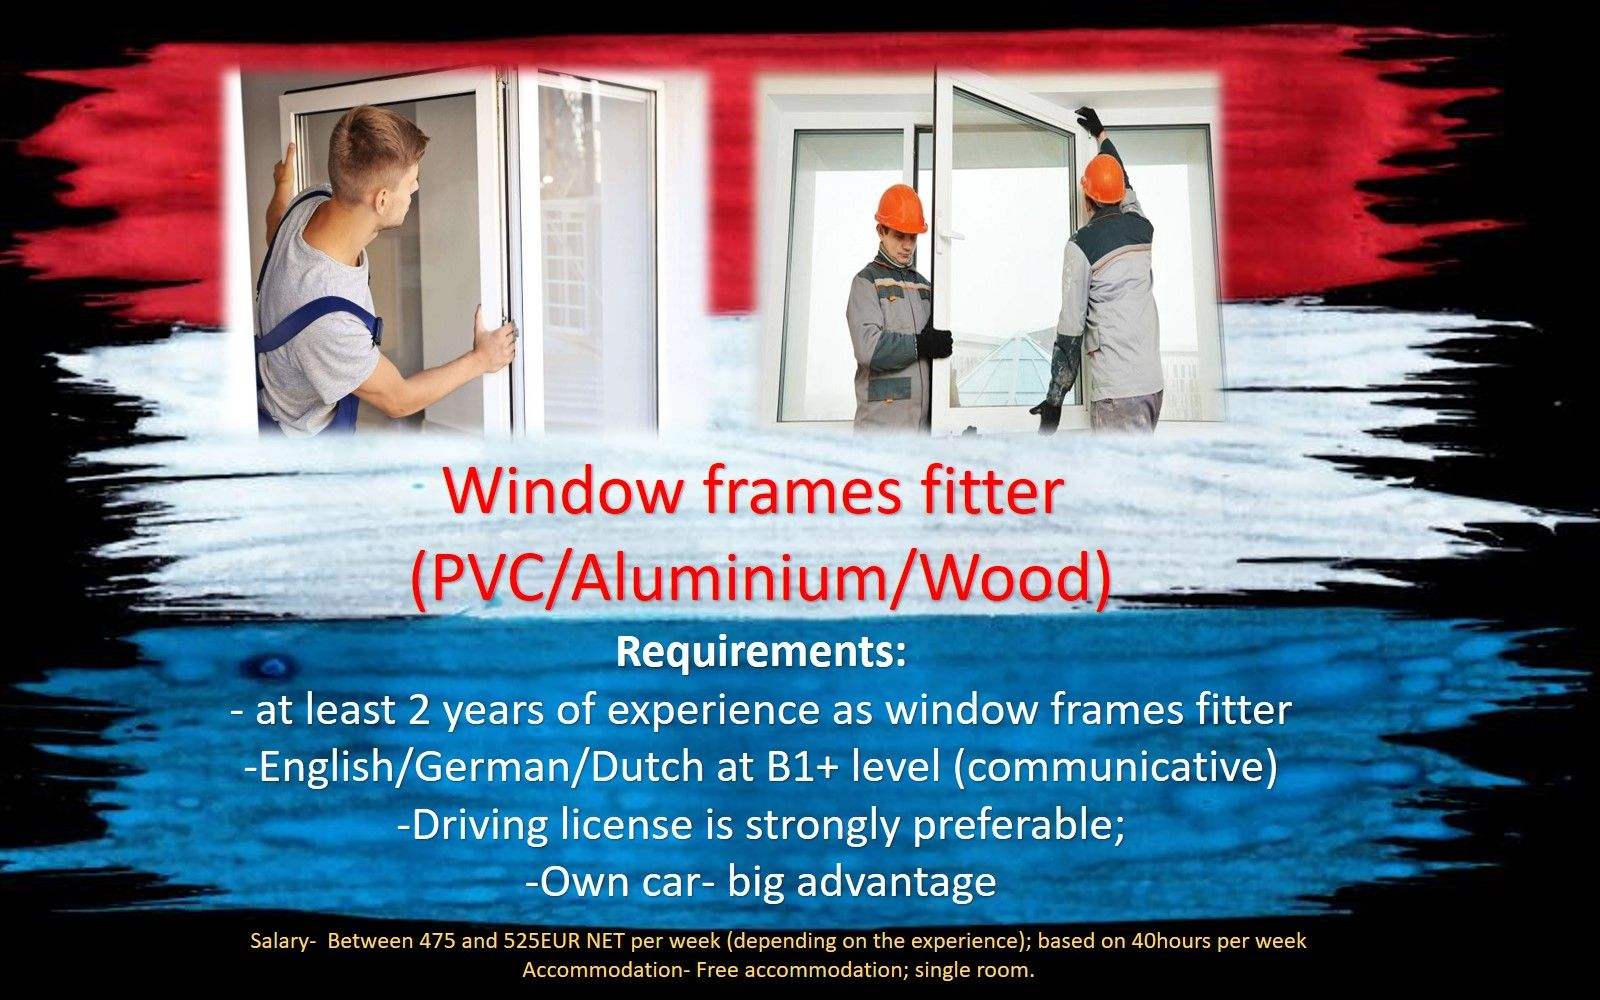 Jobs Netherlands Work Holland Window frames fitter job work in the Netherlands Holland Amsterdam, Eindhoven, Rotterdam, Haarlem